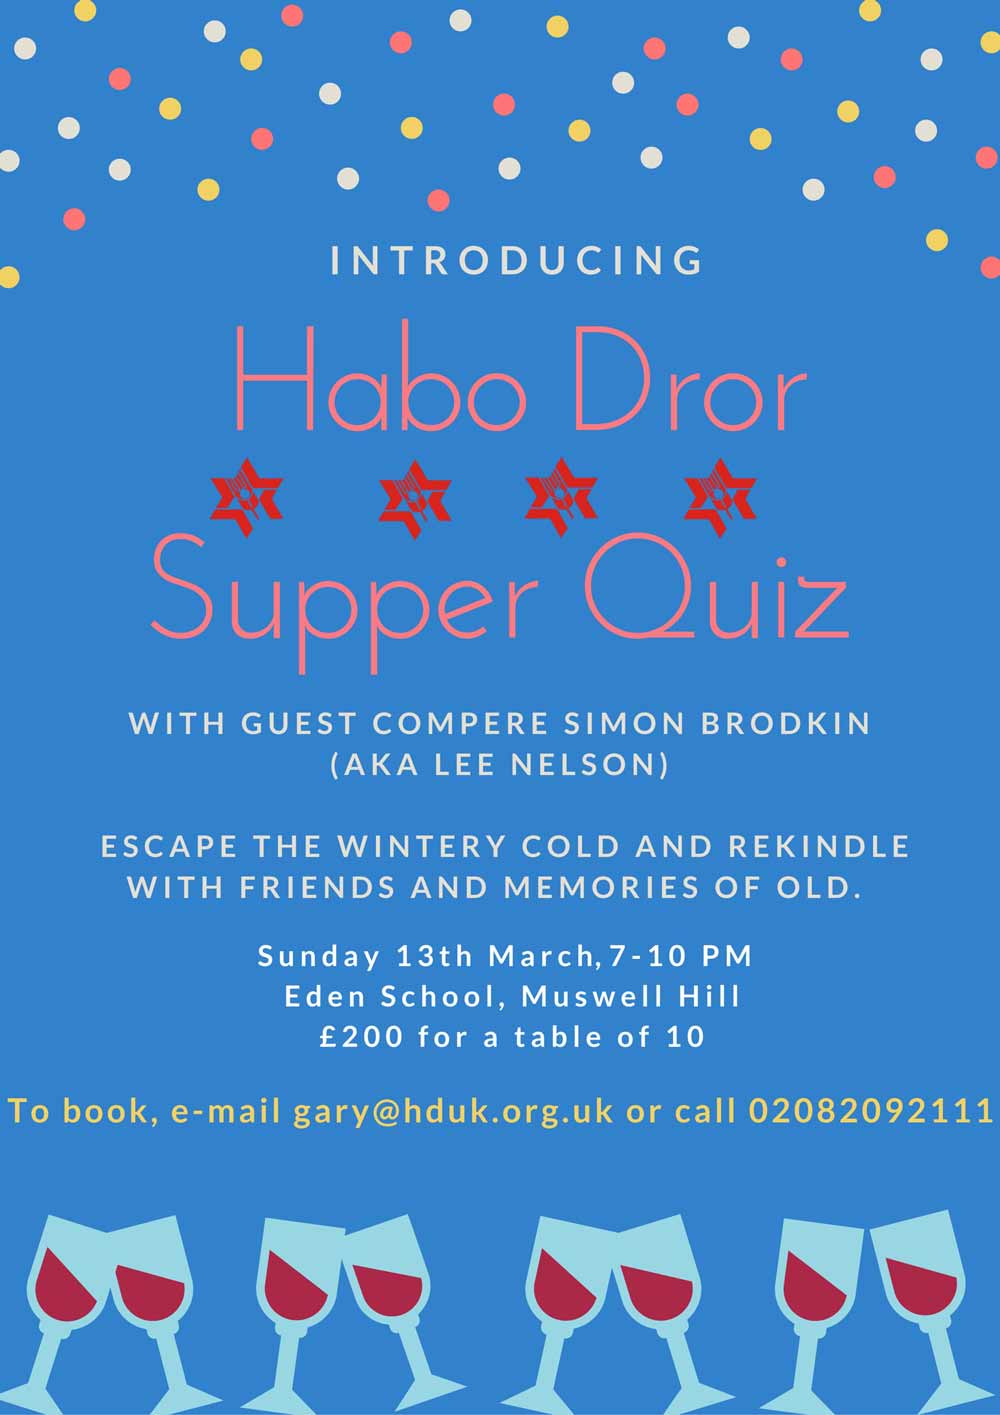 Habo-Dror-Supper-Quiz